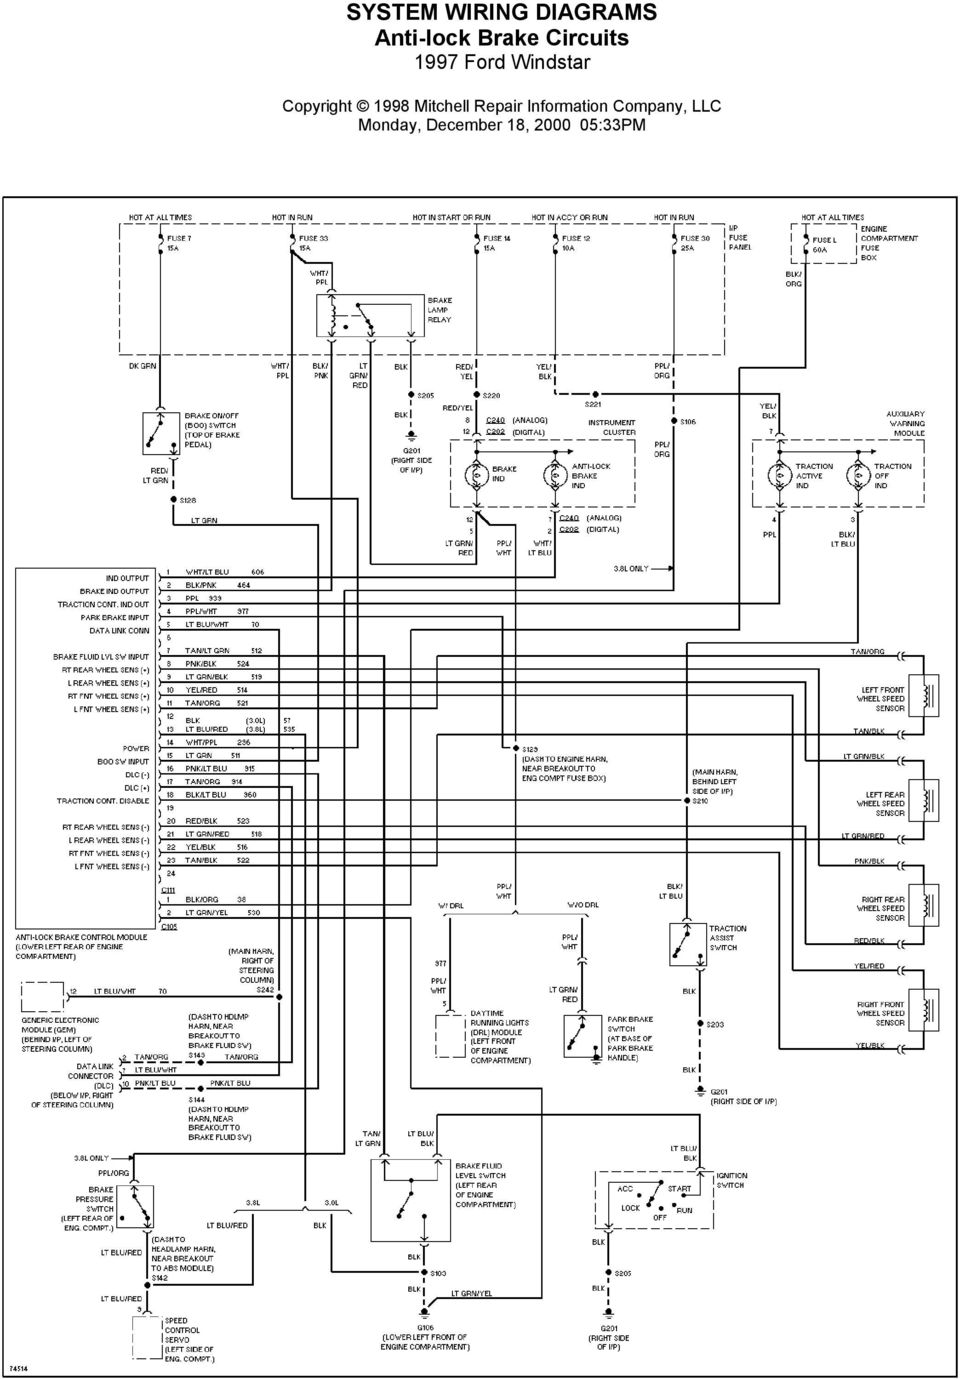 system wiring diagrams air conditioning circuits 1997 ford ... 1982 chevy c10 wiring diagram air conditioning ford f800 wiring diagram air conditioning #4